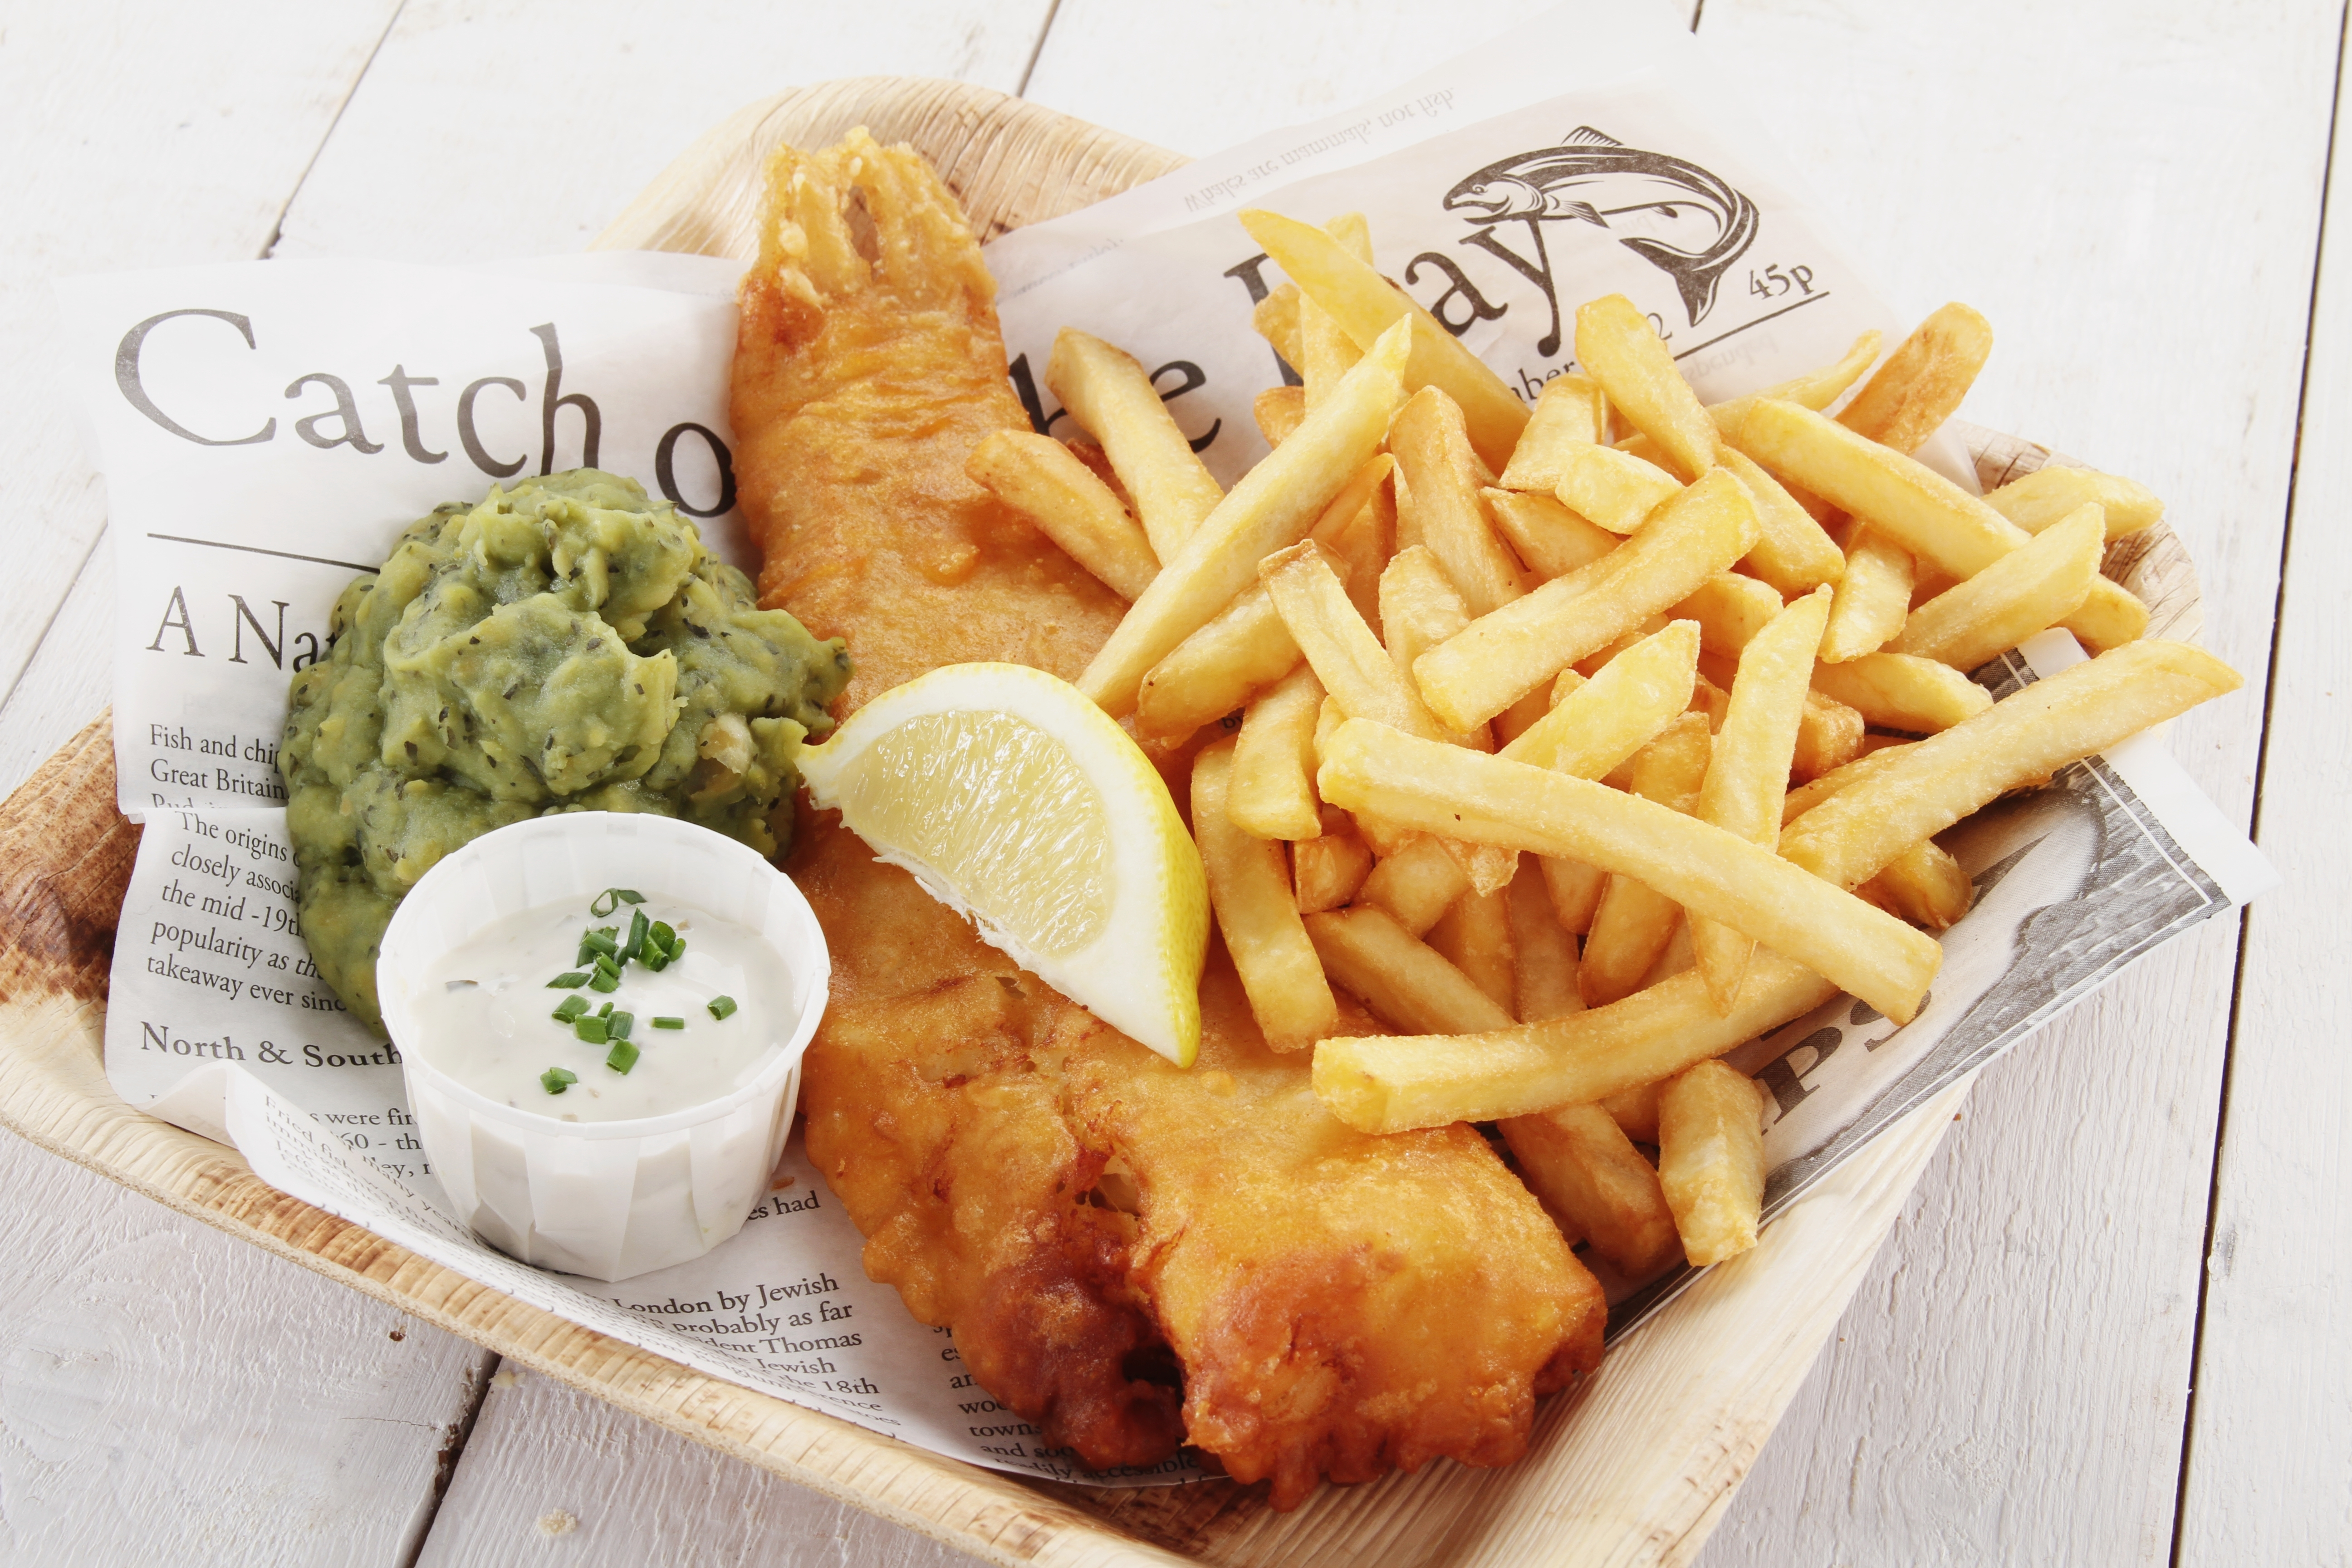 fish, chips and mushy peas in a box